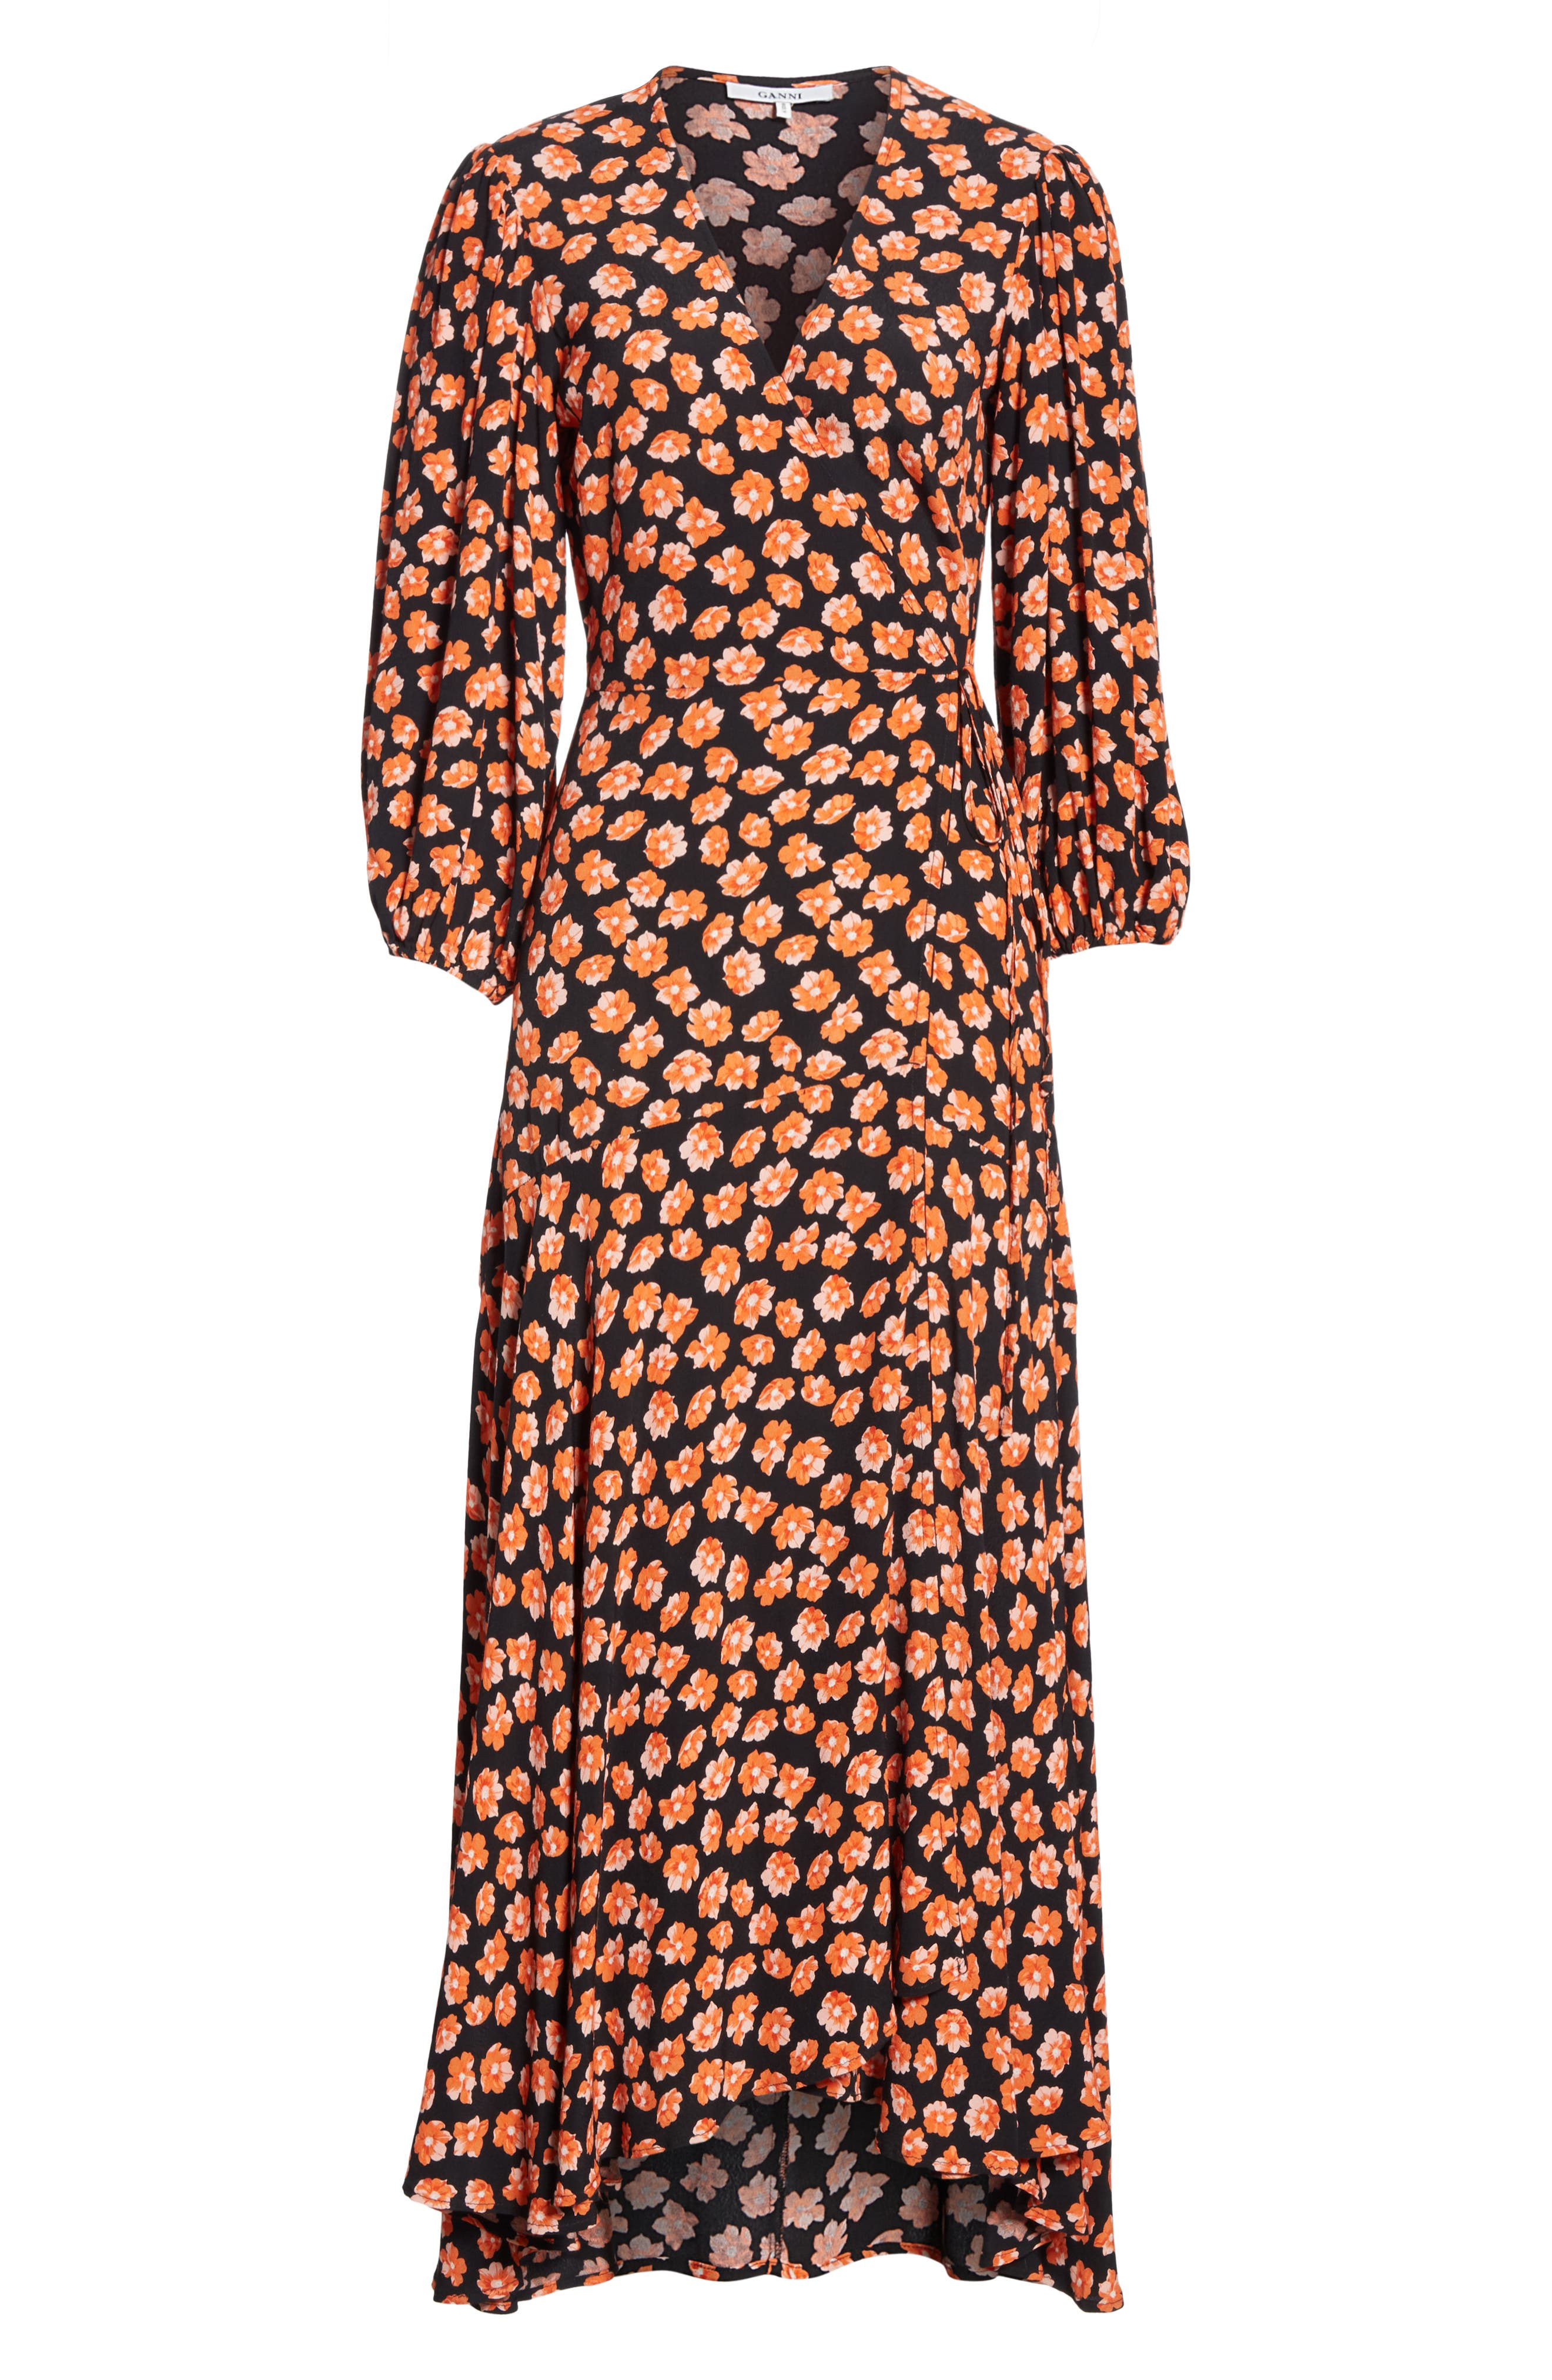 Print Crepe Dress,                             Alternate thumbnail 7, color,                             FIERY RED 403